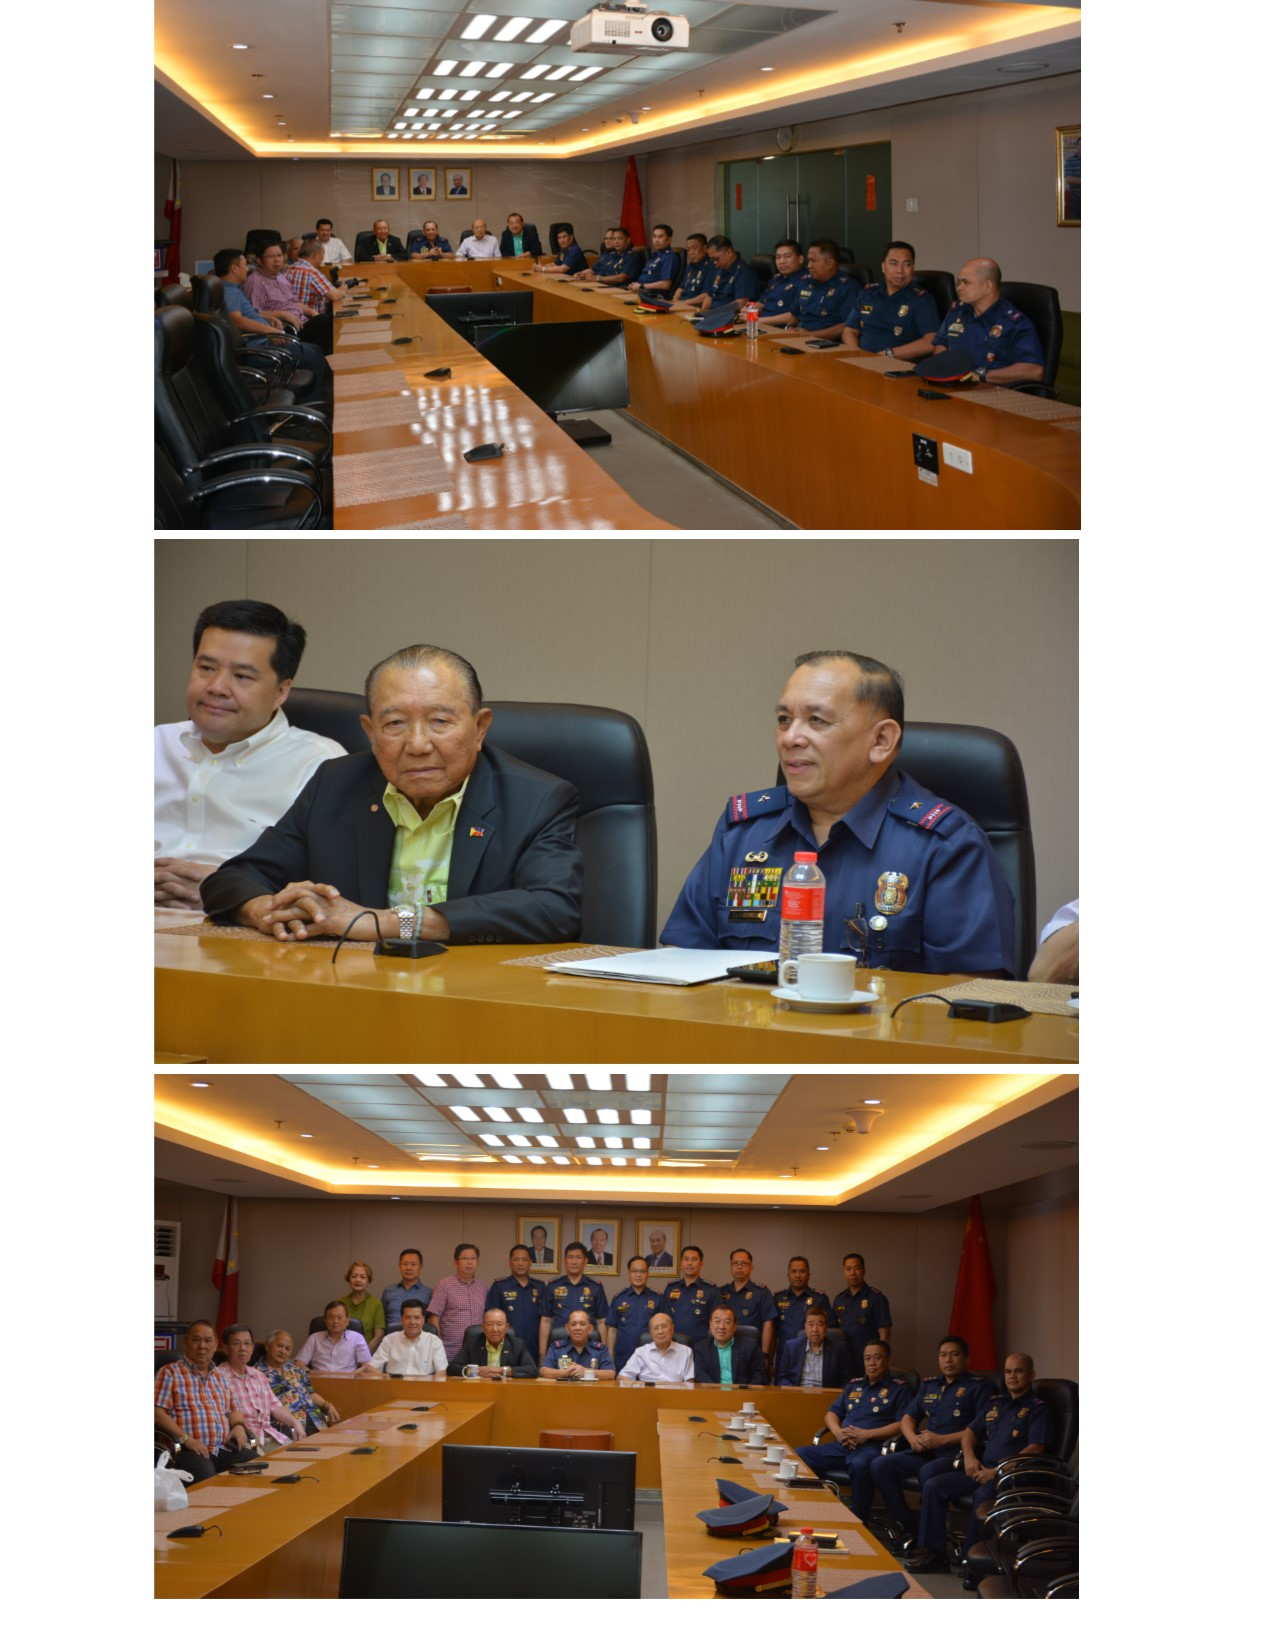 Courtesy Call of PBGEN CHRISTOPHER E TAMBUNGAN to The Philippine Chinese Charitable Association Inc. (PCCAI)